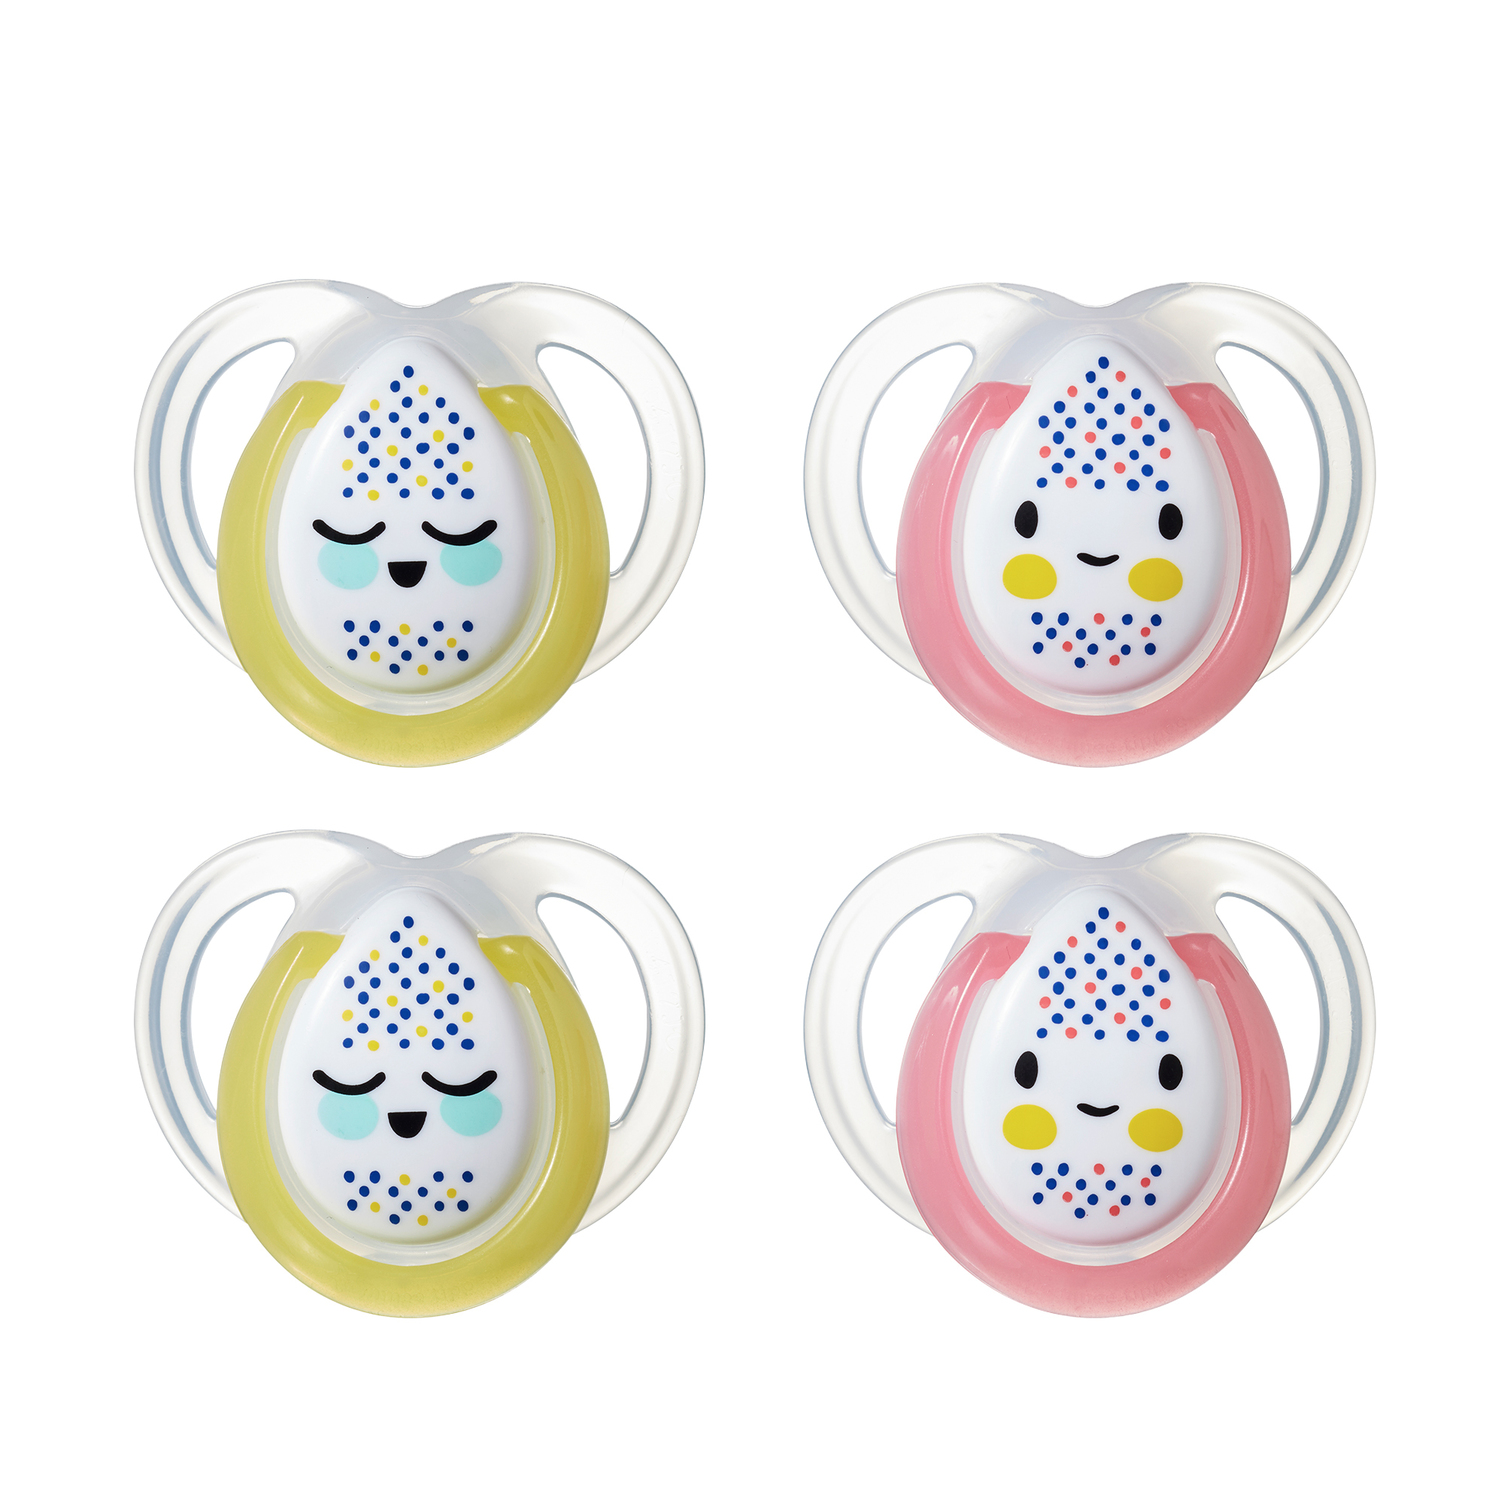 Tommee Tippee Closer to Nature Night Time Baby Pacifier, 0-6m, 4pk, Unisex